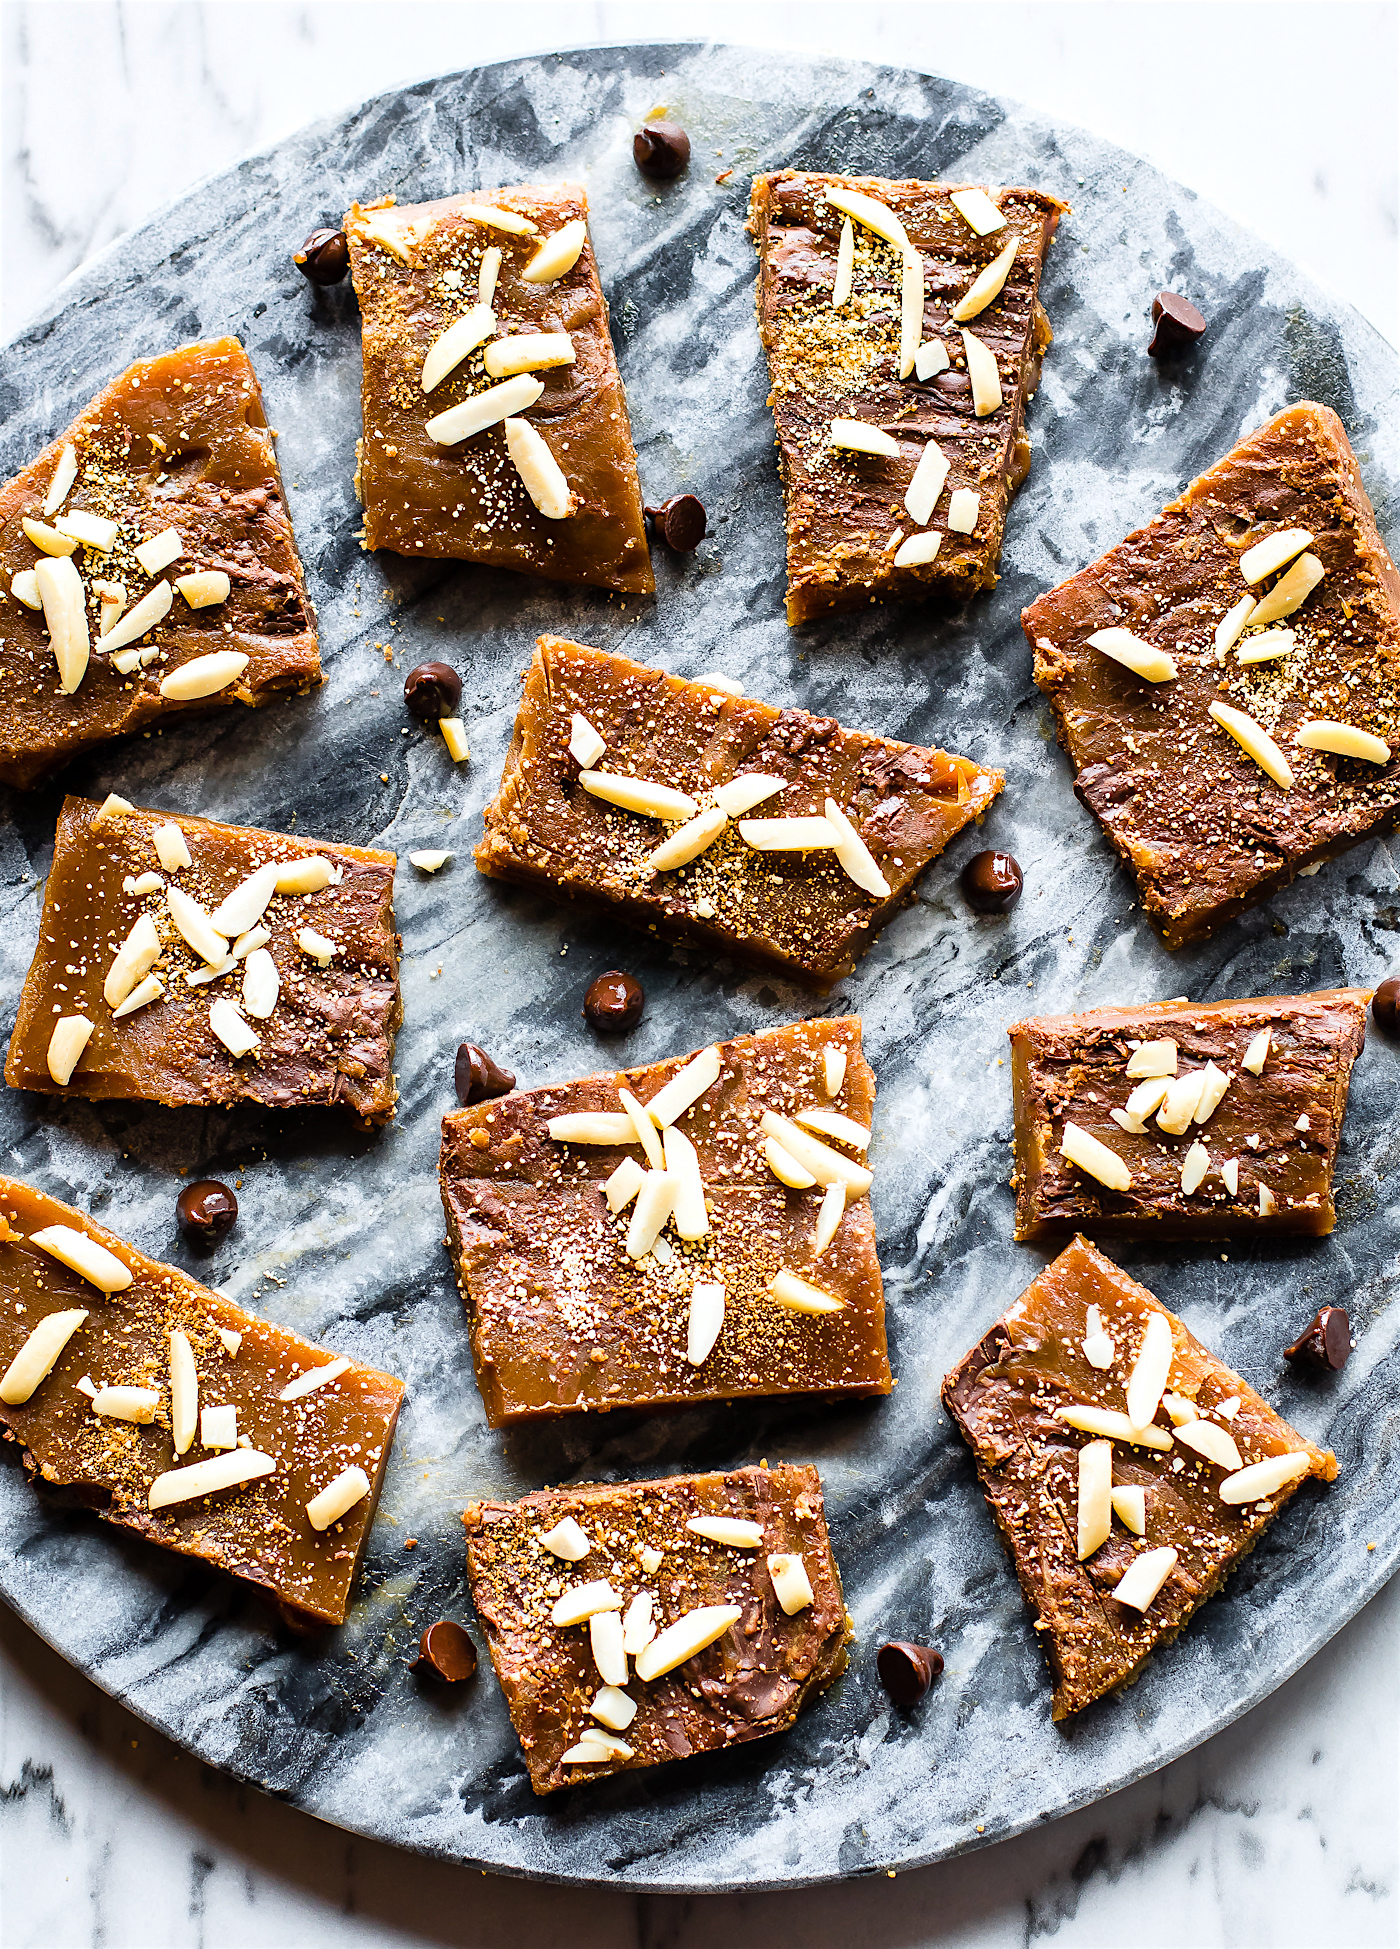 Paleo Toffee made with just 5 simple ingredients, plus your favorite topping. EASY to make with real butter, maple syrup, dark chocolate, and more. The perfect Maple Paleo Toffee treat to get you through the Holidays... okay it's just good ANYTIME! Healthier gluten free treats to love and share.